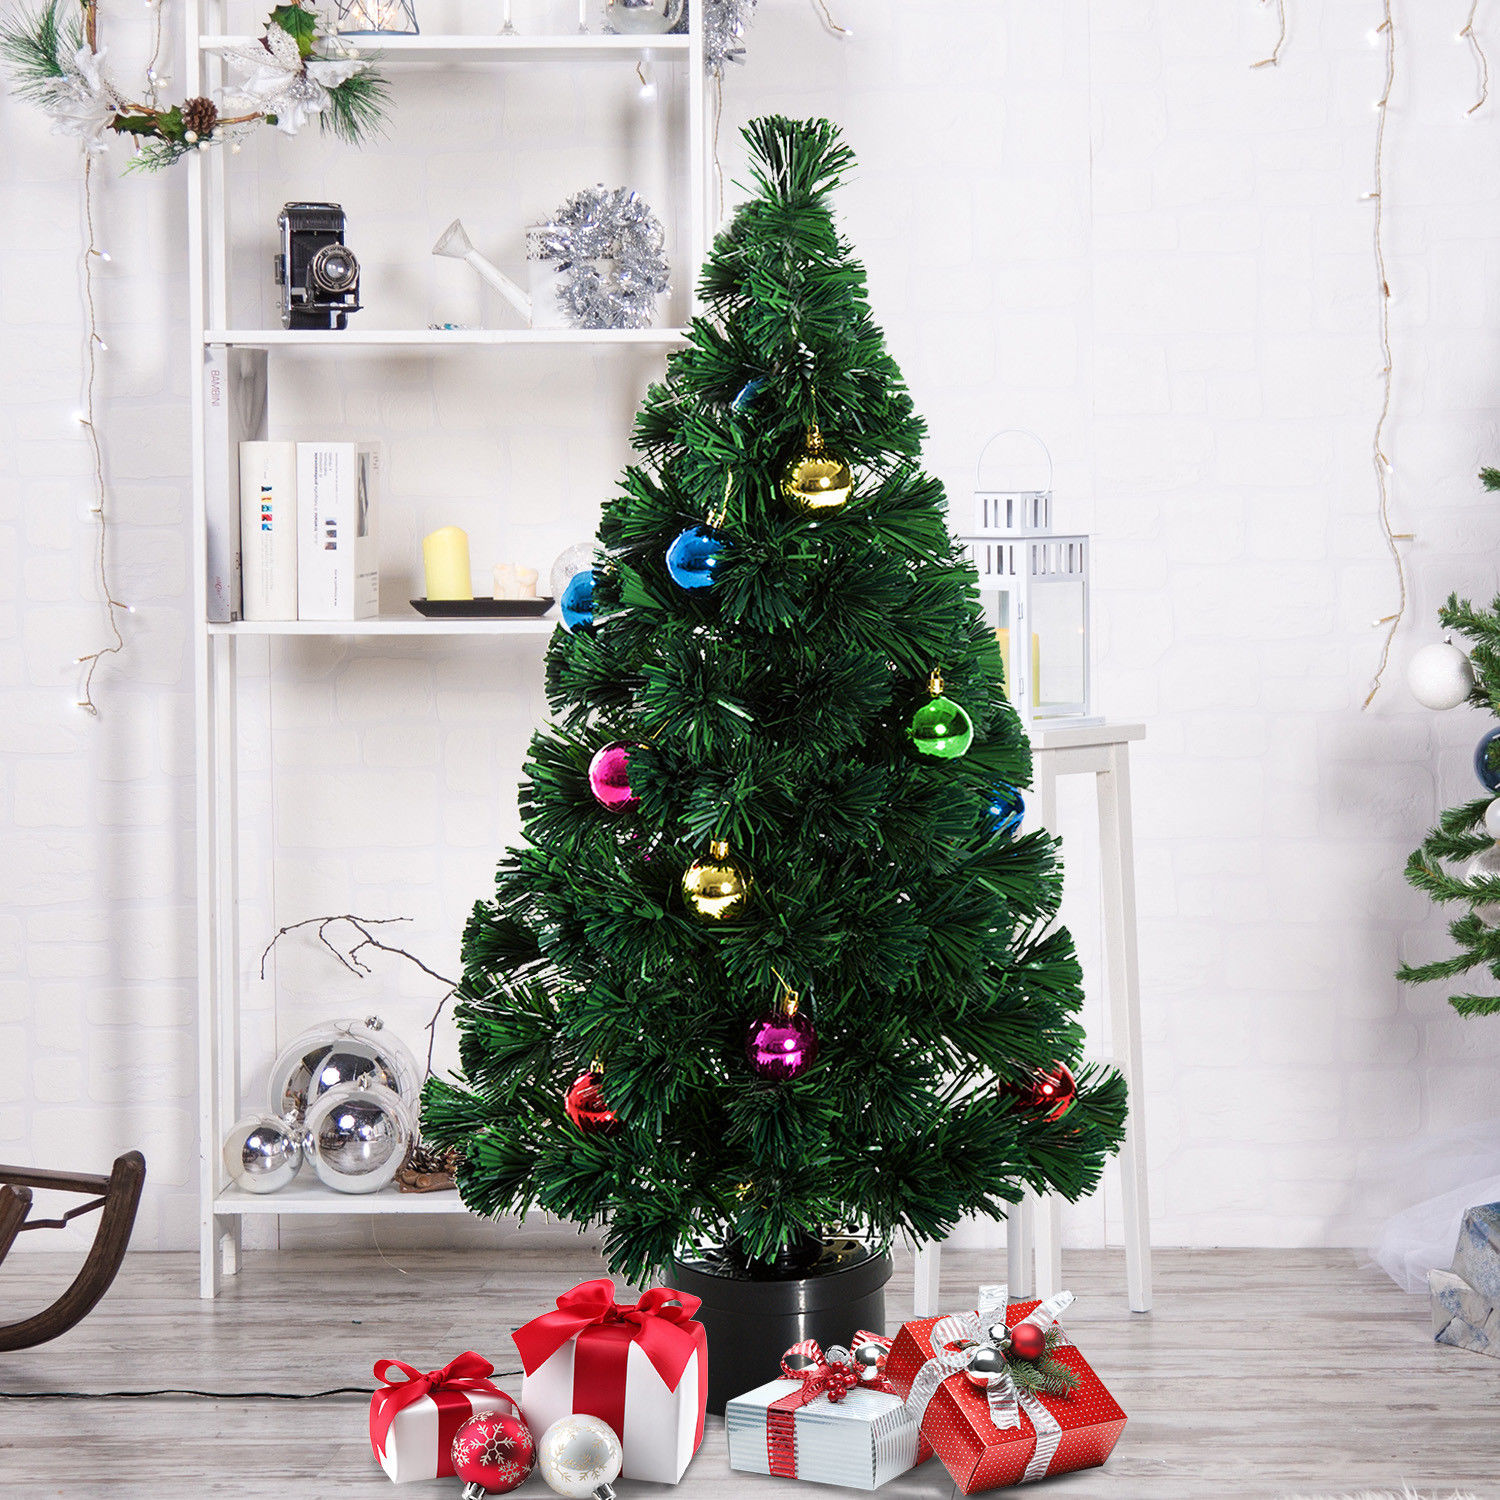 Image of £19.99 HOMCOM 3 ft Artificial Christmas W/Rotating Stand-Green / 3FT 90cm Fibre Optic Tree Green Pine Holiday Decorations PVC Rotating Stand w/ 20 Ornament Balls & 115 Branch Tips 4ft 5ft 6ft 7ft Xmas LED Snowflake from 7.99 830-074 5055974833968